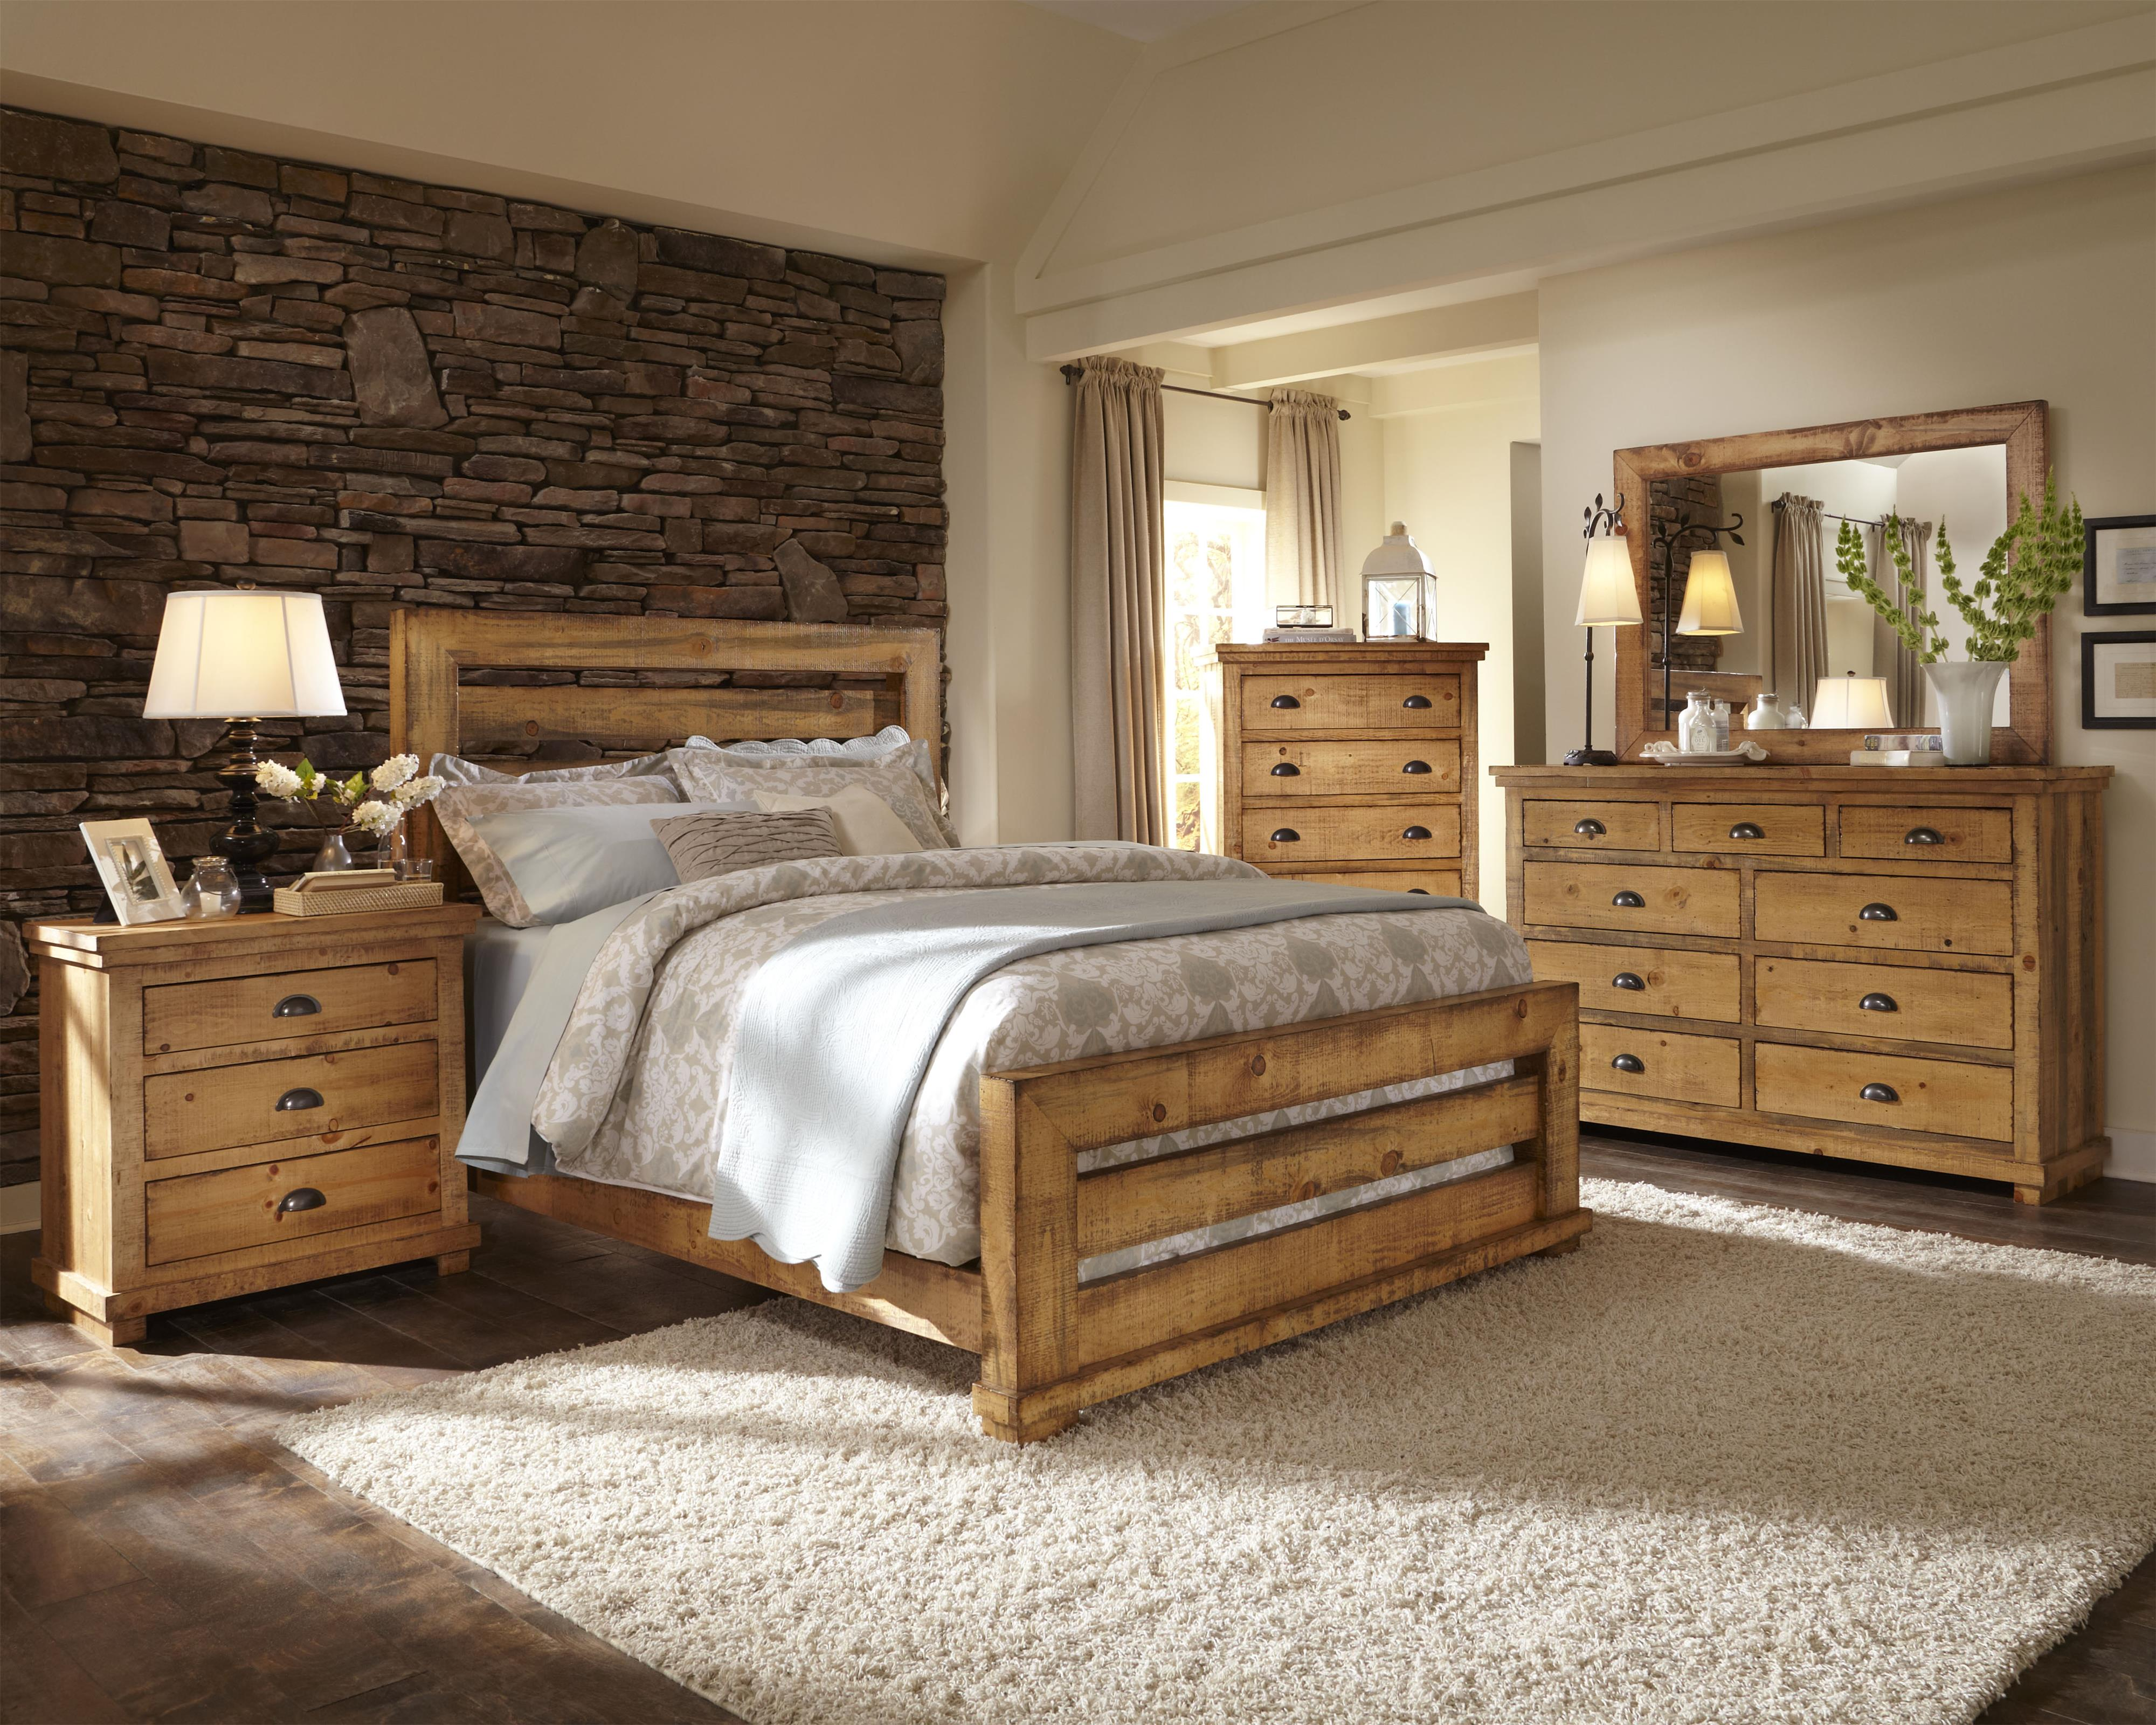 Progressive furniture willow king slat bed with distressed pine frame colder 39 s furniture and for Distressed pine bedroom furniture